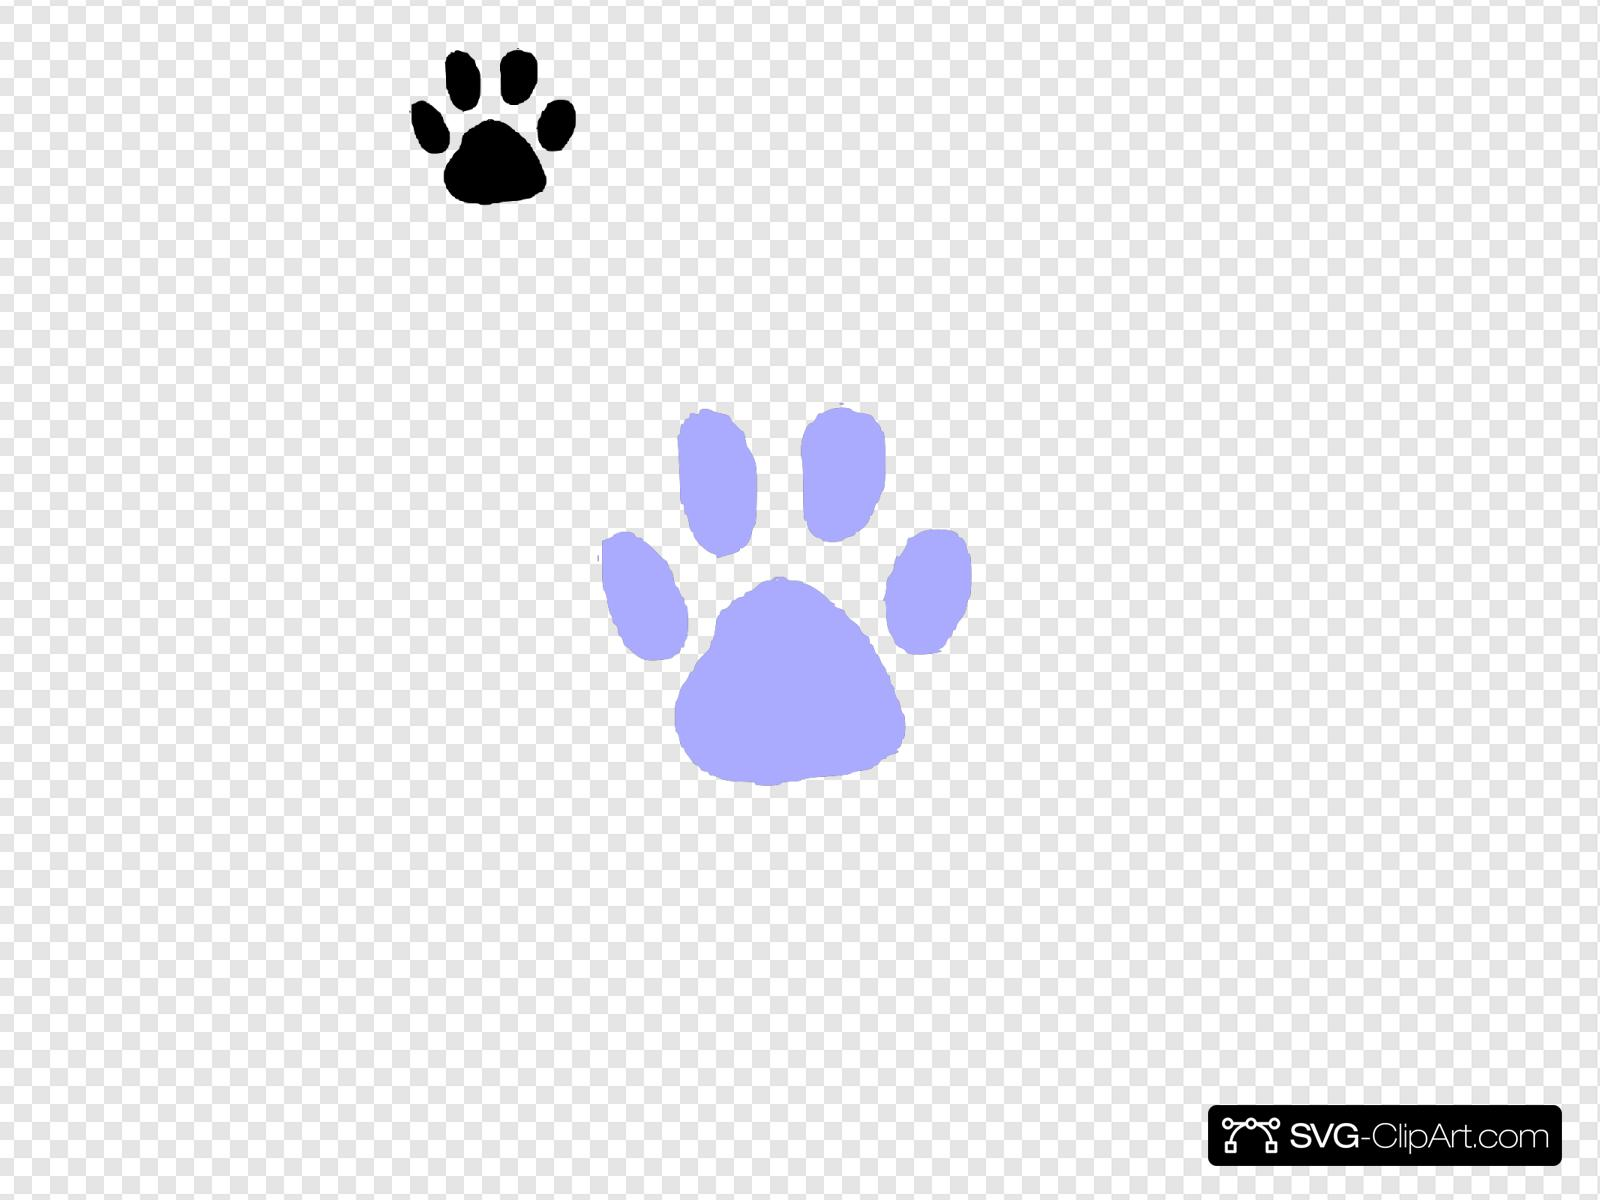 Purple Paw Print Svg Vector Purple Paw Print Clip Art Svg Clipart All paw clip art are png format and transparent background. svg clipart